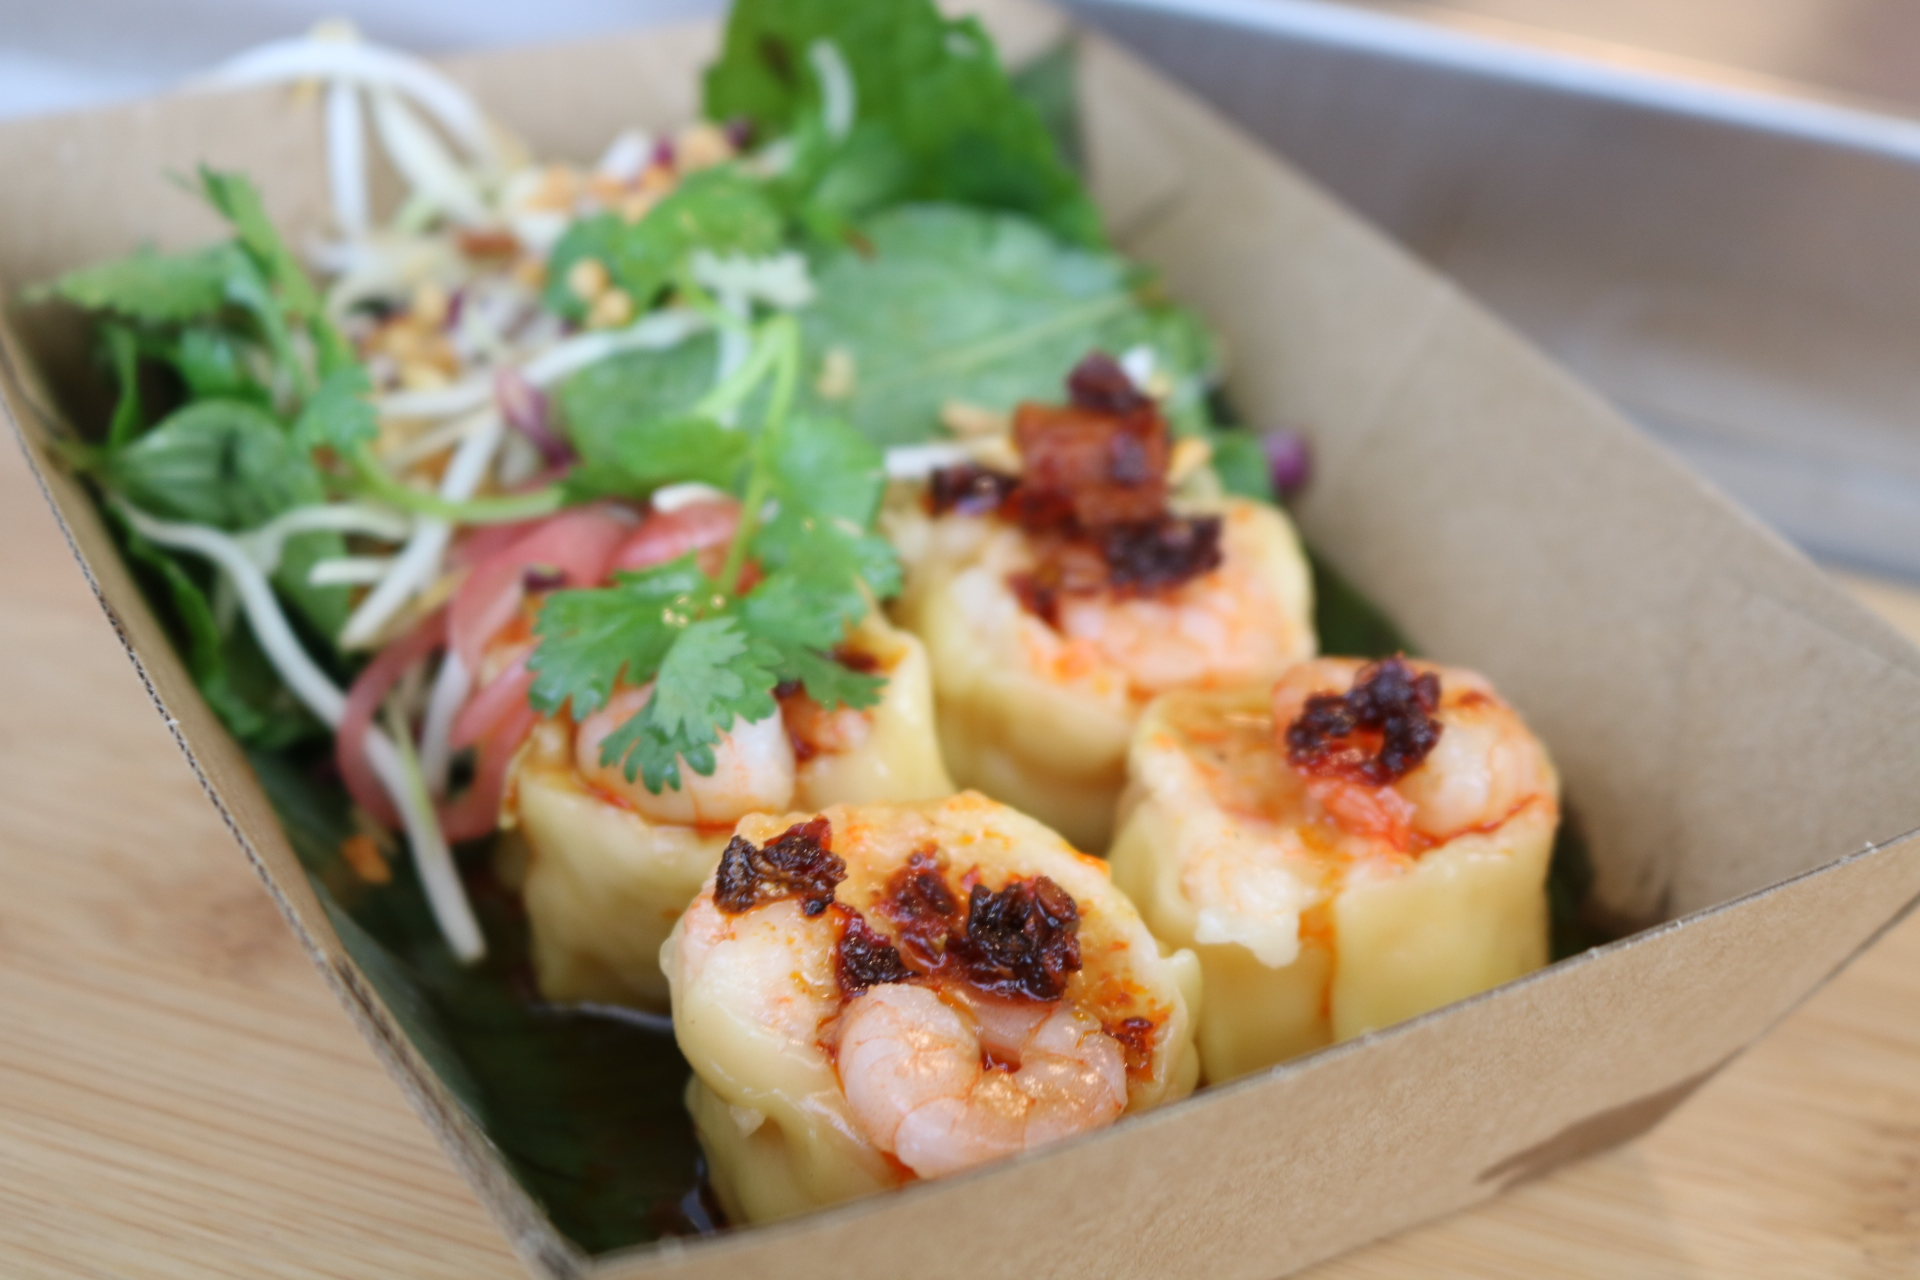 HAPUNANFOOD TRUCK - Pinoy dishes with a modern touch!